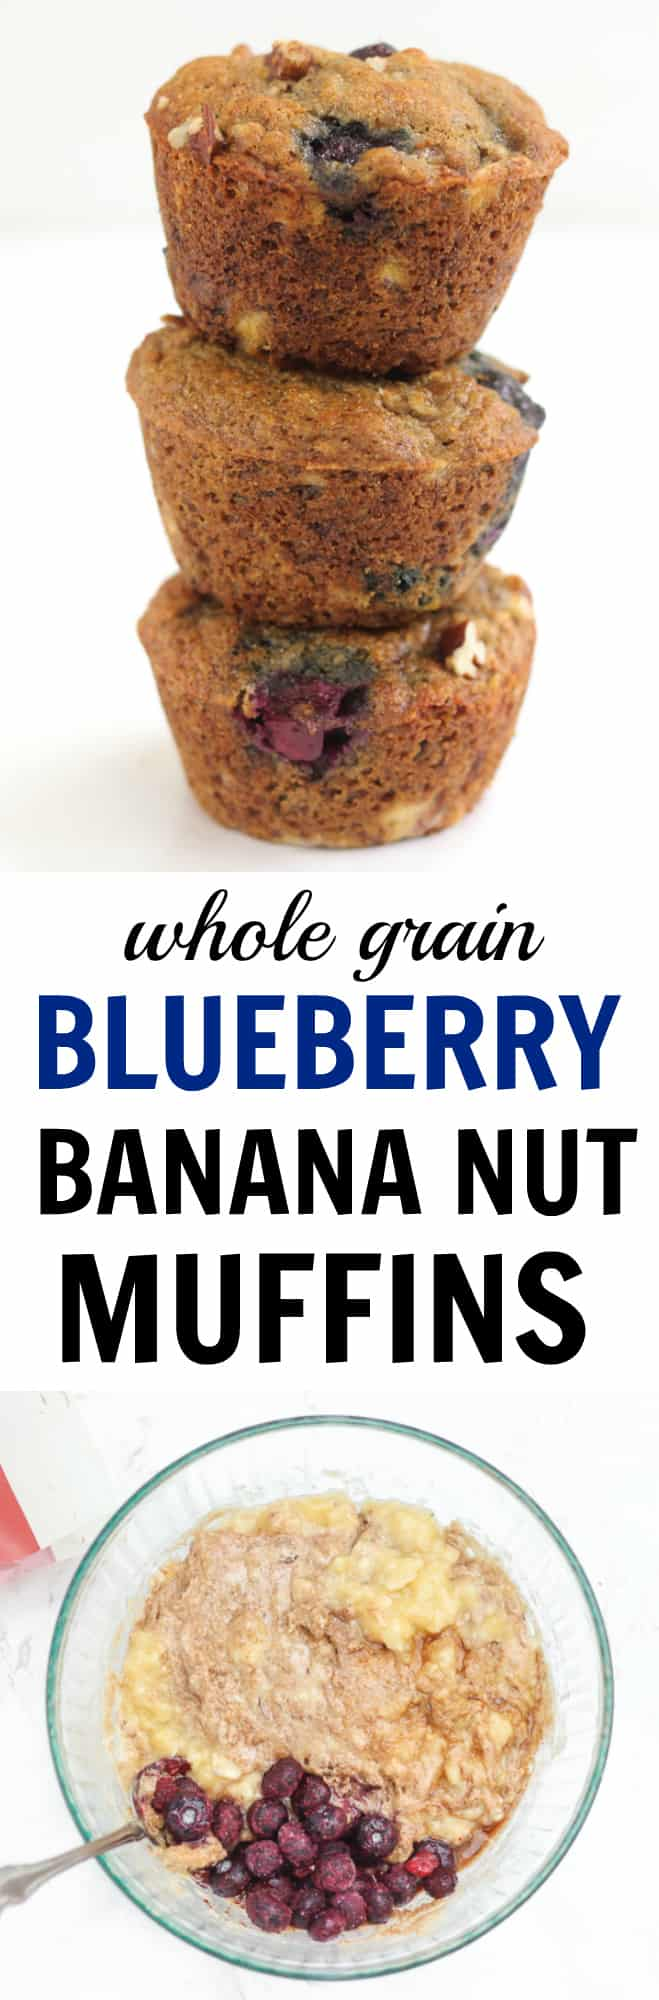 These hearty muffins have blueberries, mashed bananas, nuts, and cinnamon and are the perfect whole-grain treat!